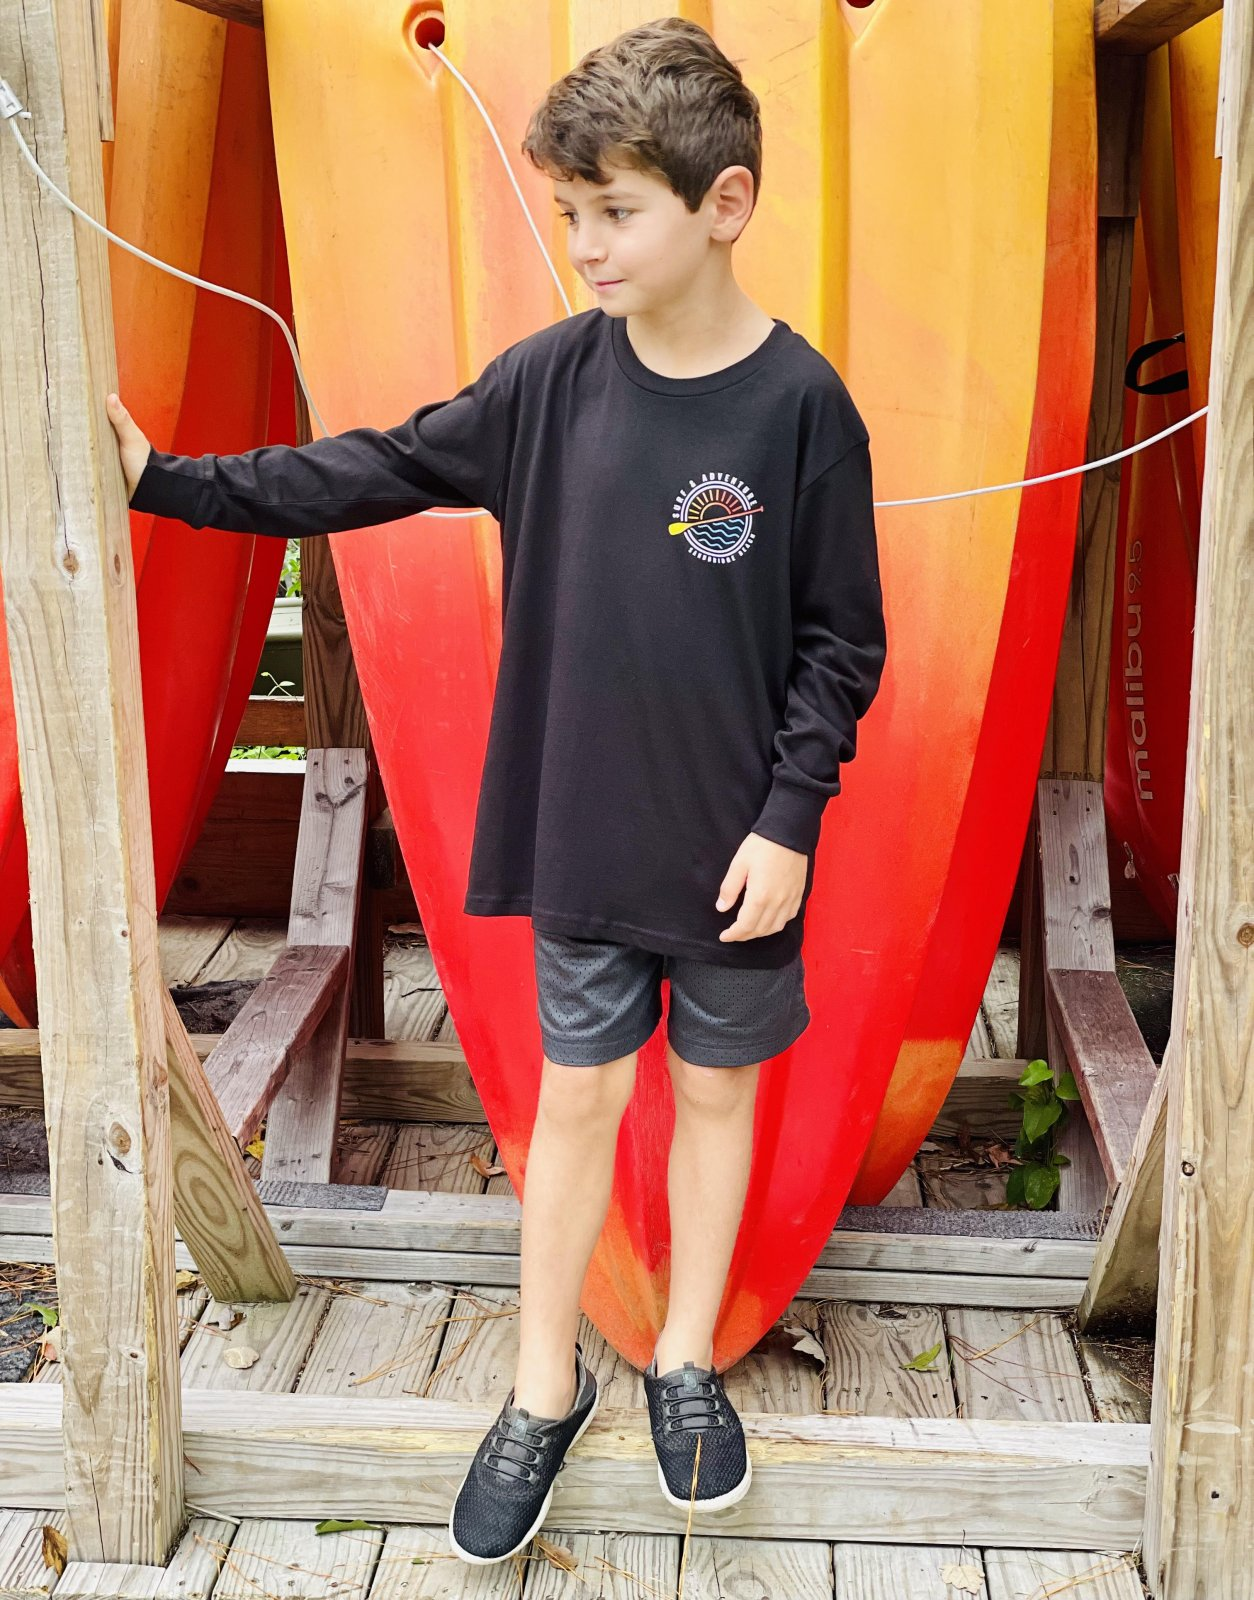 S&A Youth Sun Water & Paddle Long Sleeve